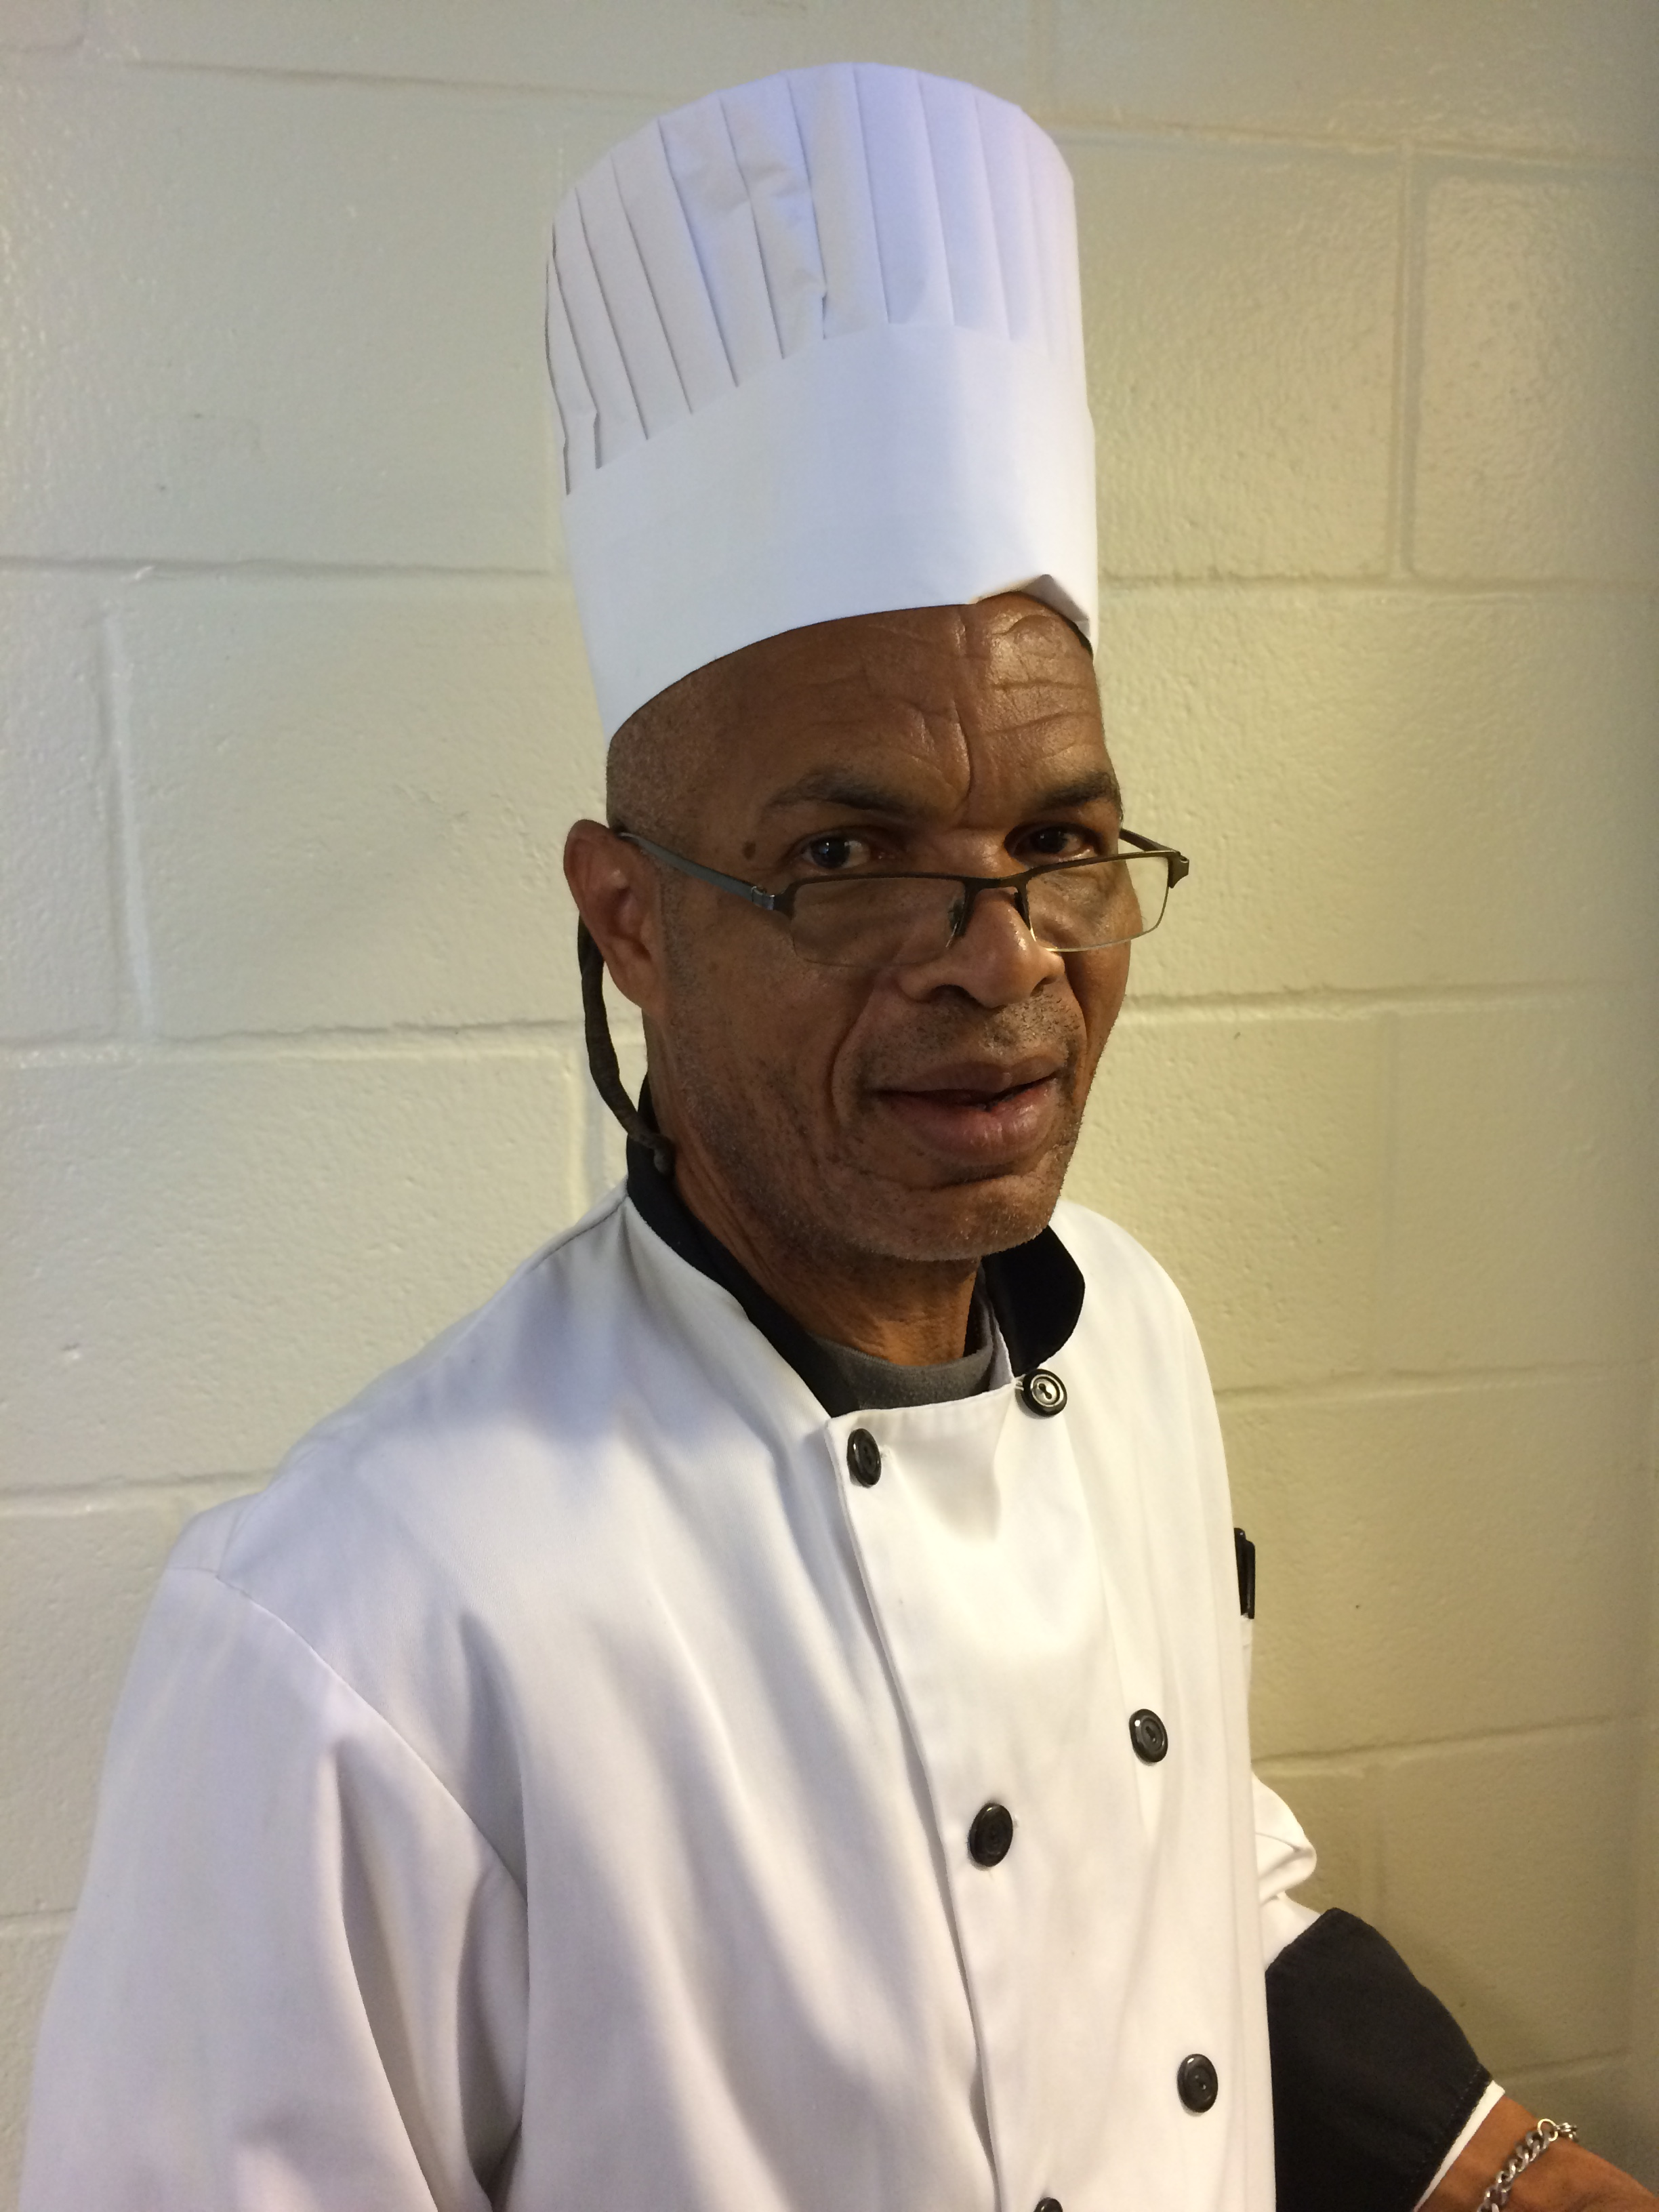 Stephen Montague - Chef, OPH Residence